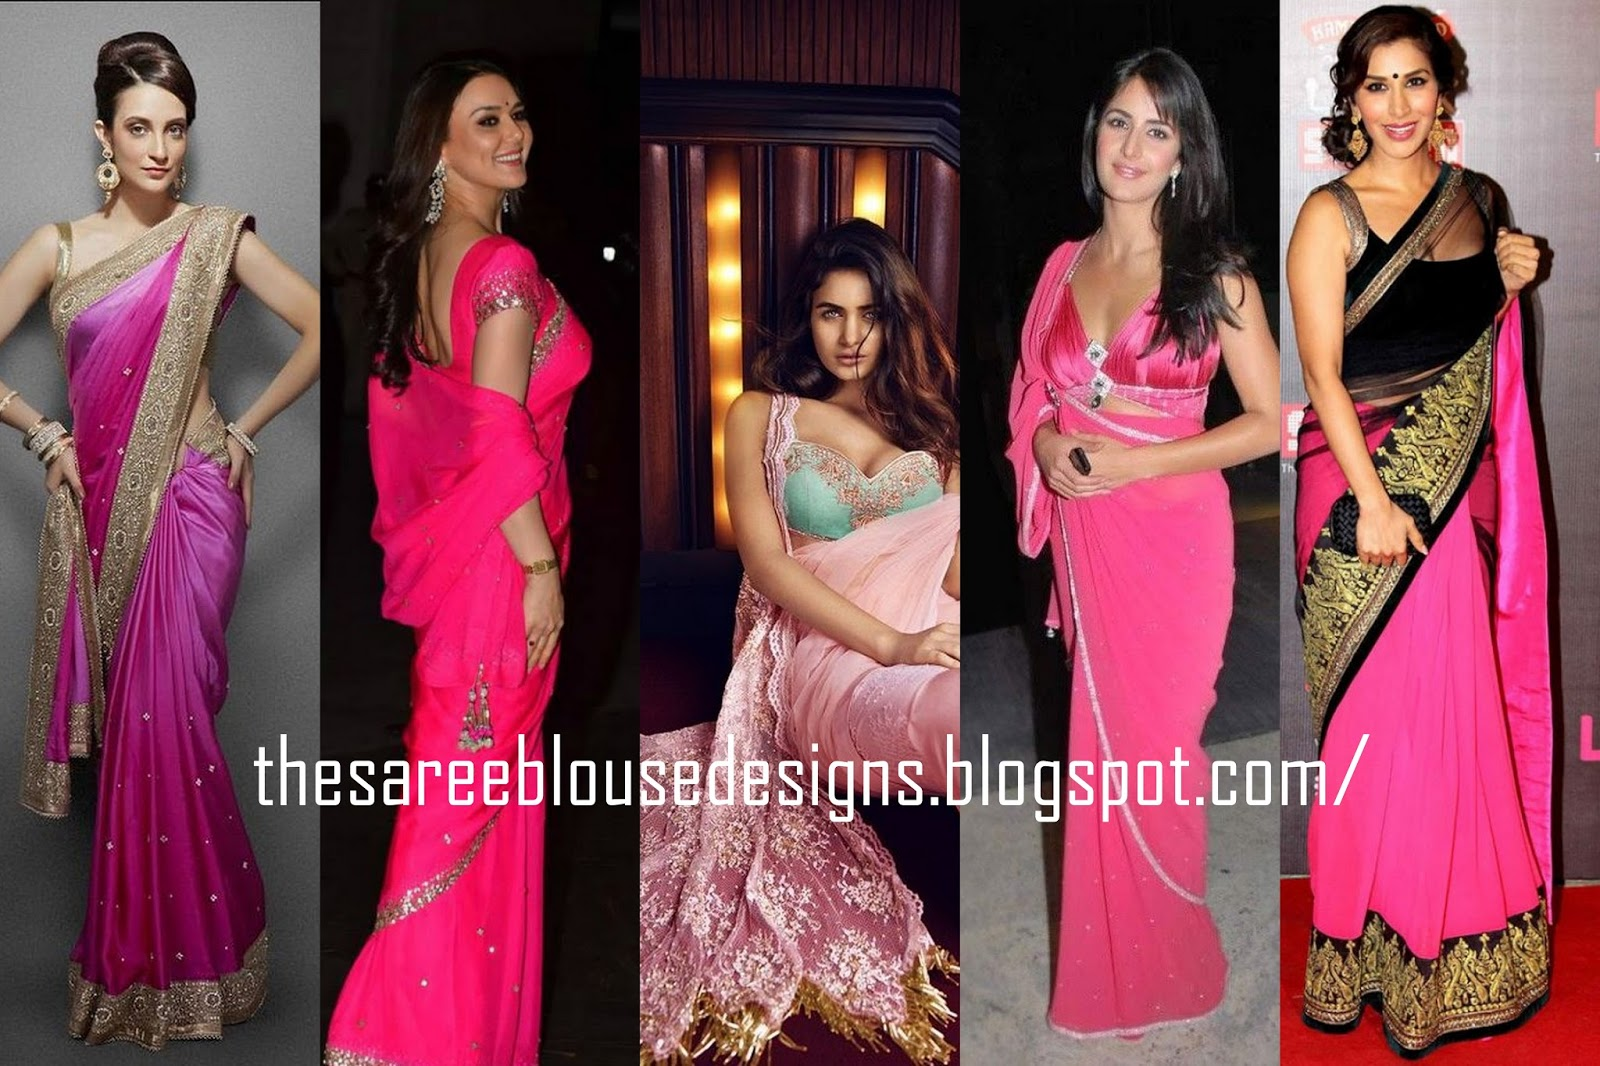 a762d71942c81 Saree Blouse Designs  What Type of Blouse to Pair with Pink Sarees